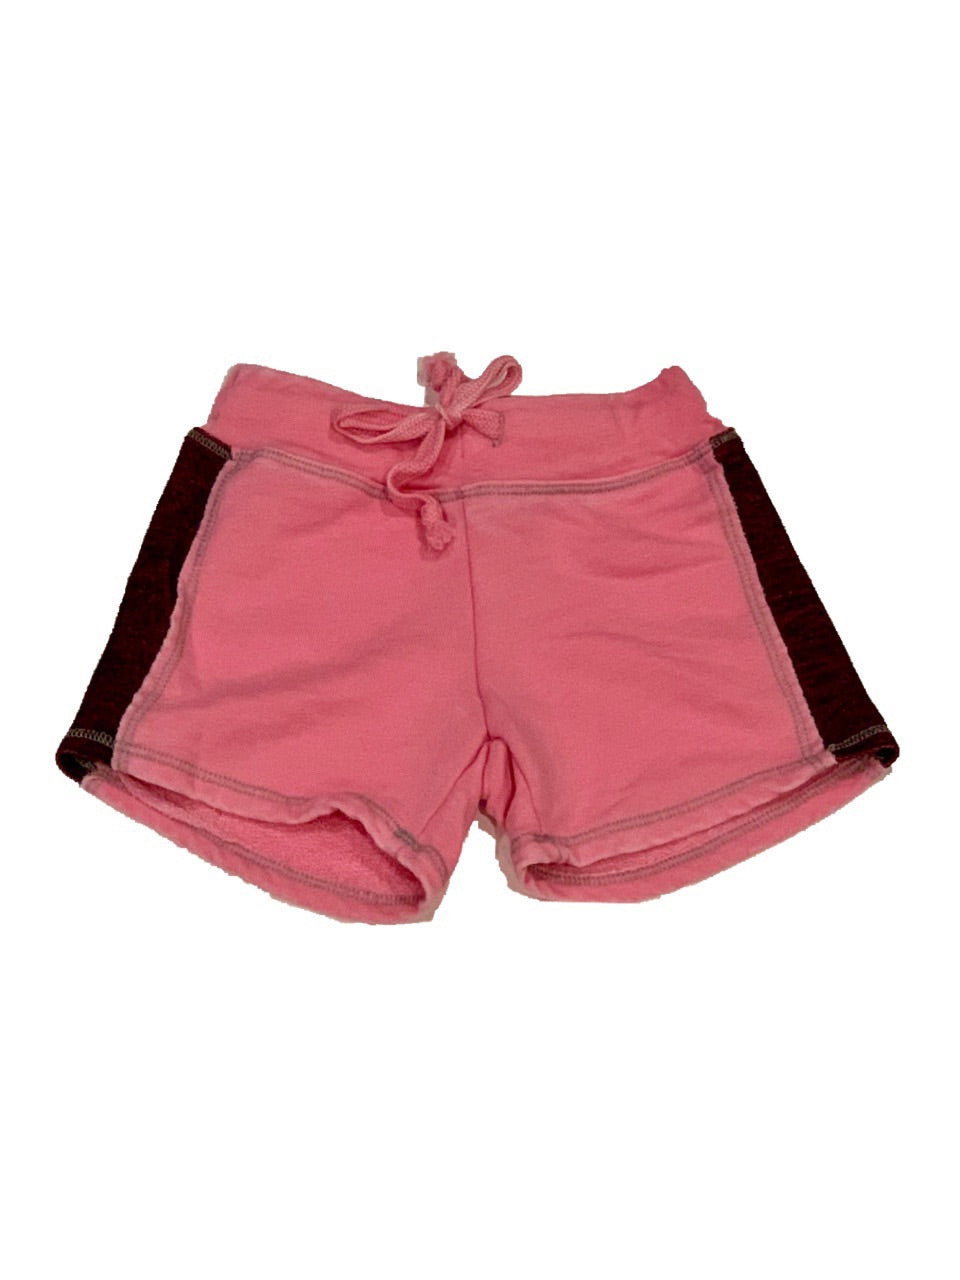 T2Love Bright Pink Contrast Gym Shorts